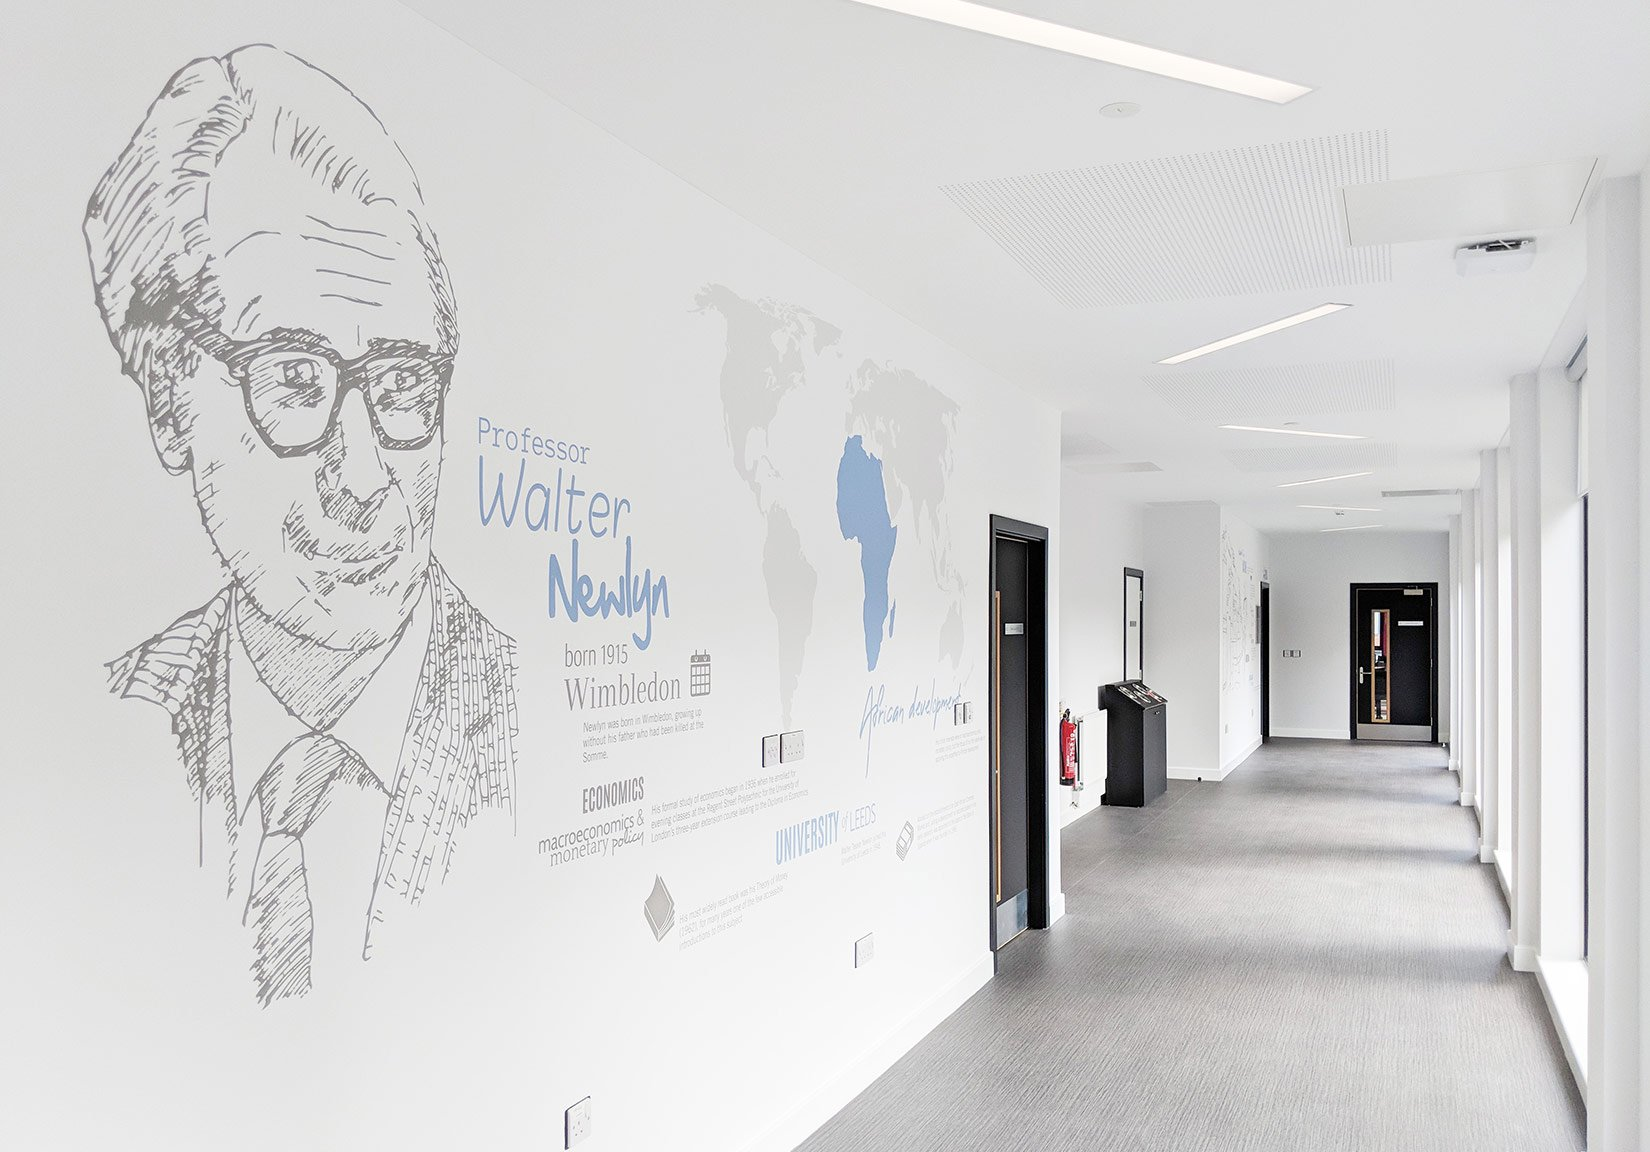 Newlyn Building, University of Leeds, wall graphics Professor Walter Newlyn and his achievements